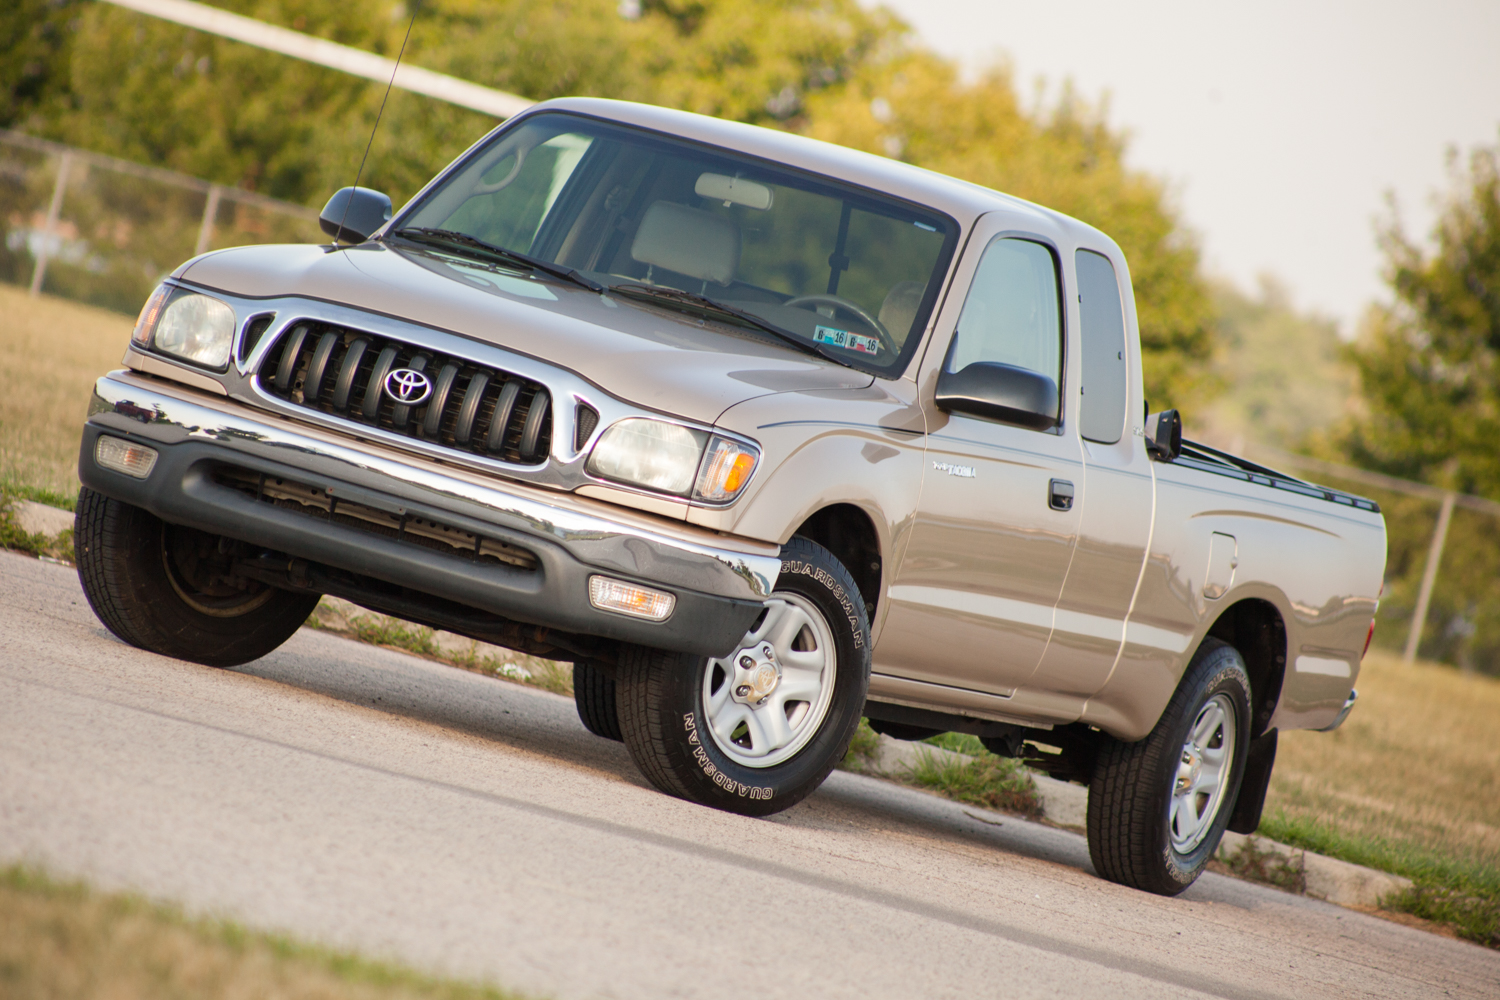 2004 toyota tacoma xtracab carfax certified. Black Bedroom Furniture Sets. Home Design Ideas